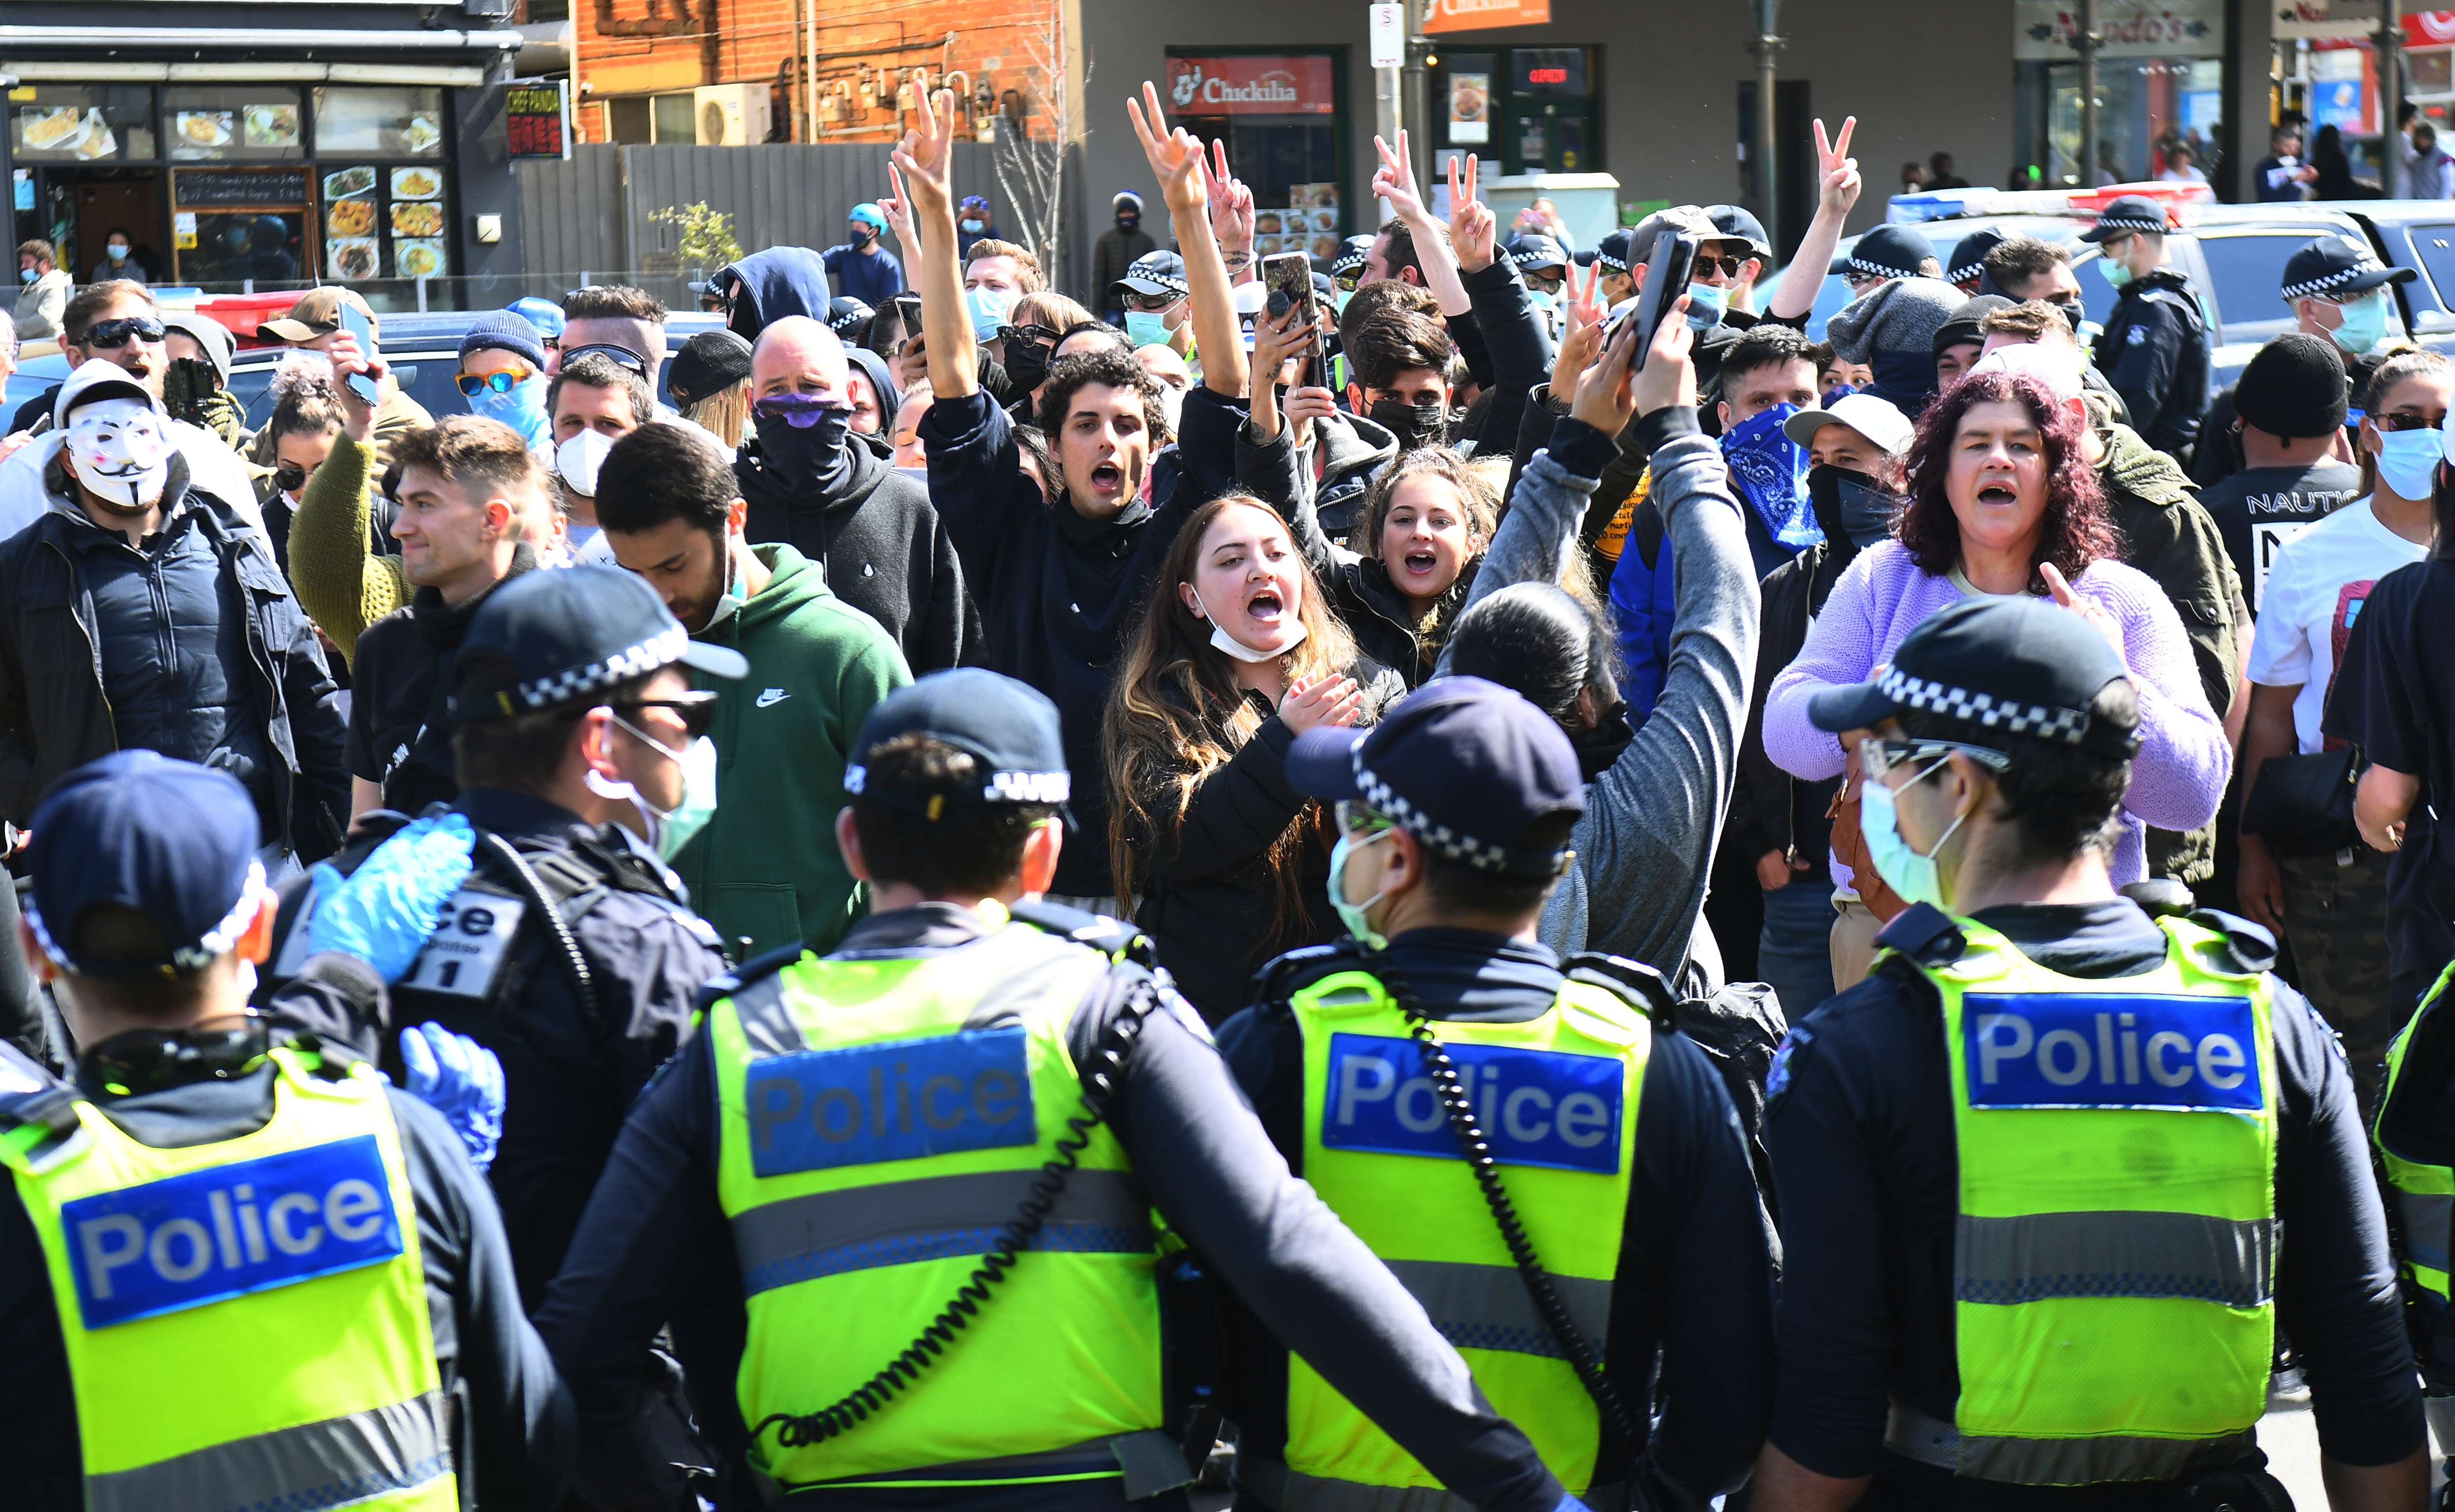 People protesting against coronavirus lockdown arrested in Melbourne amid clashes with police